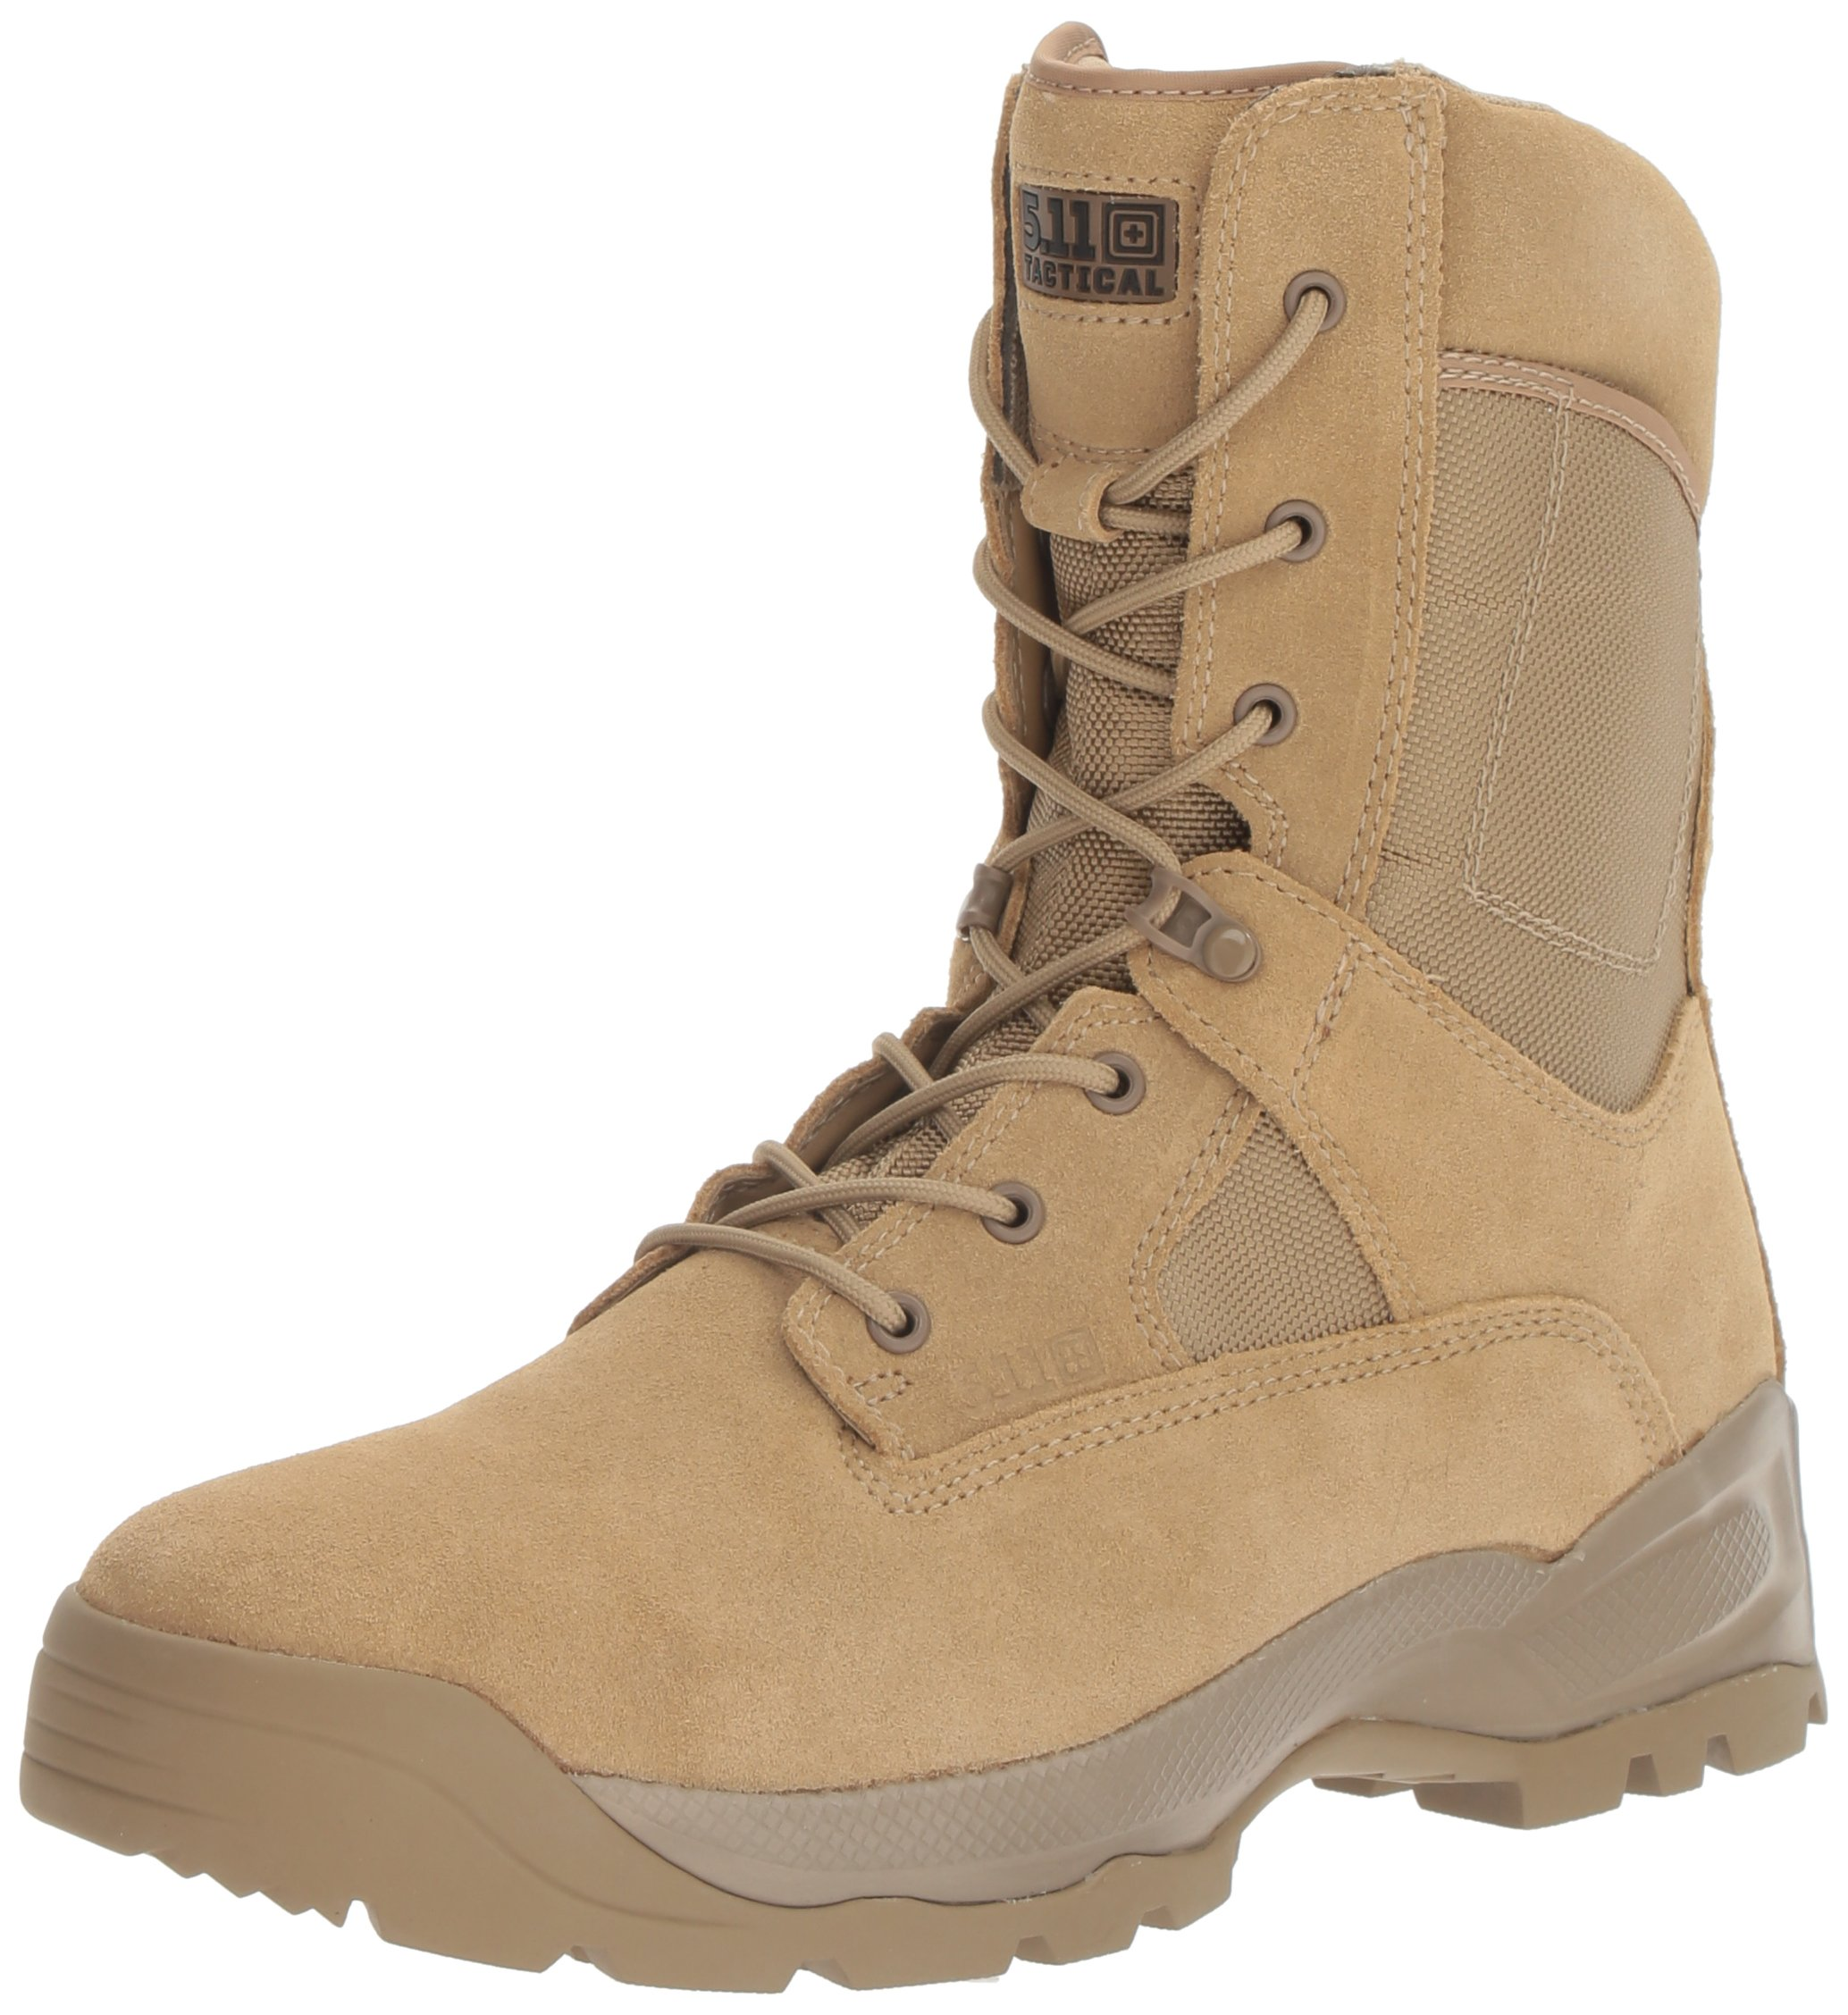 5.11 Atac 8In Boot-U, Coyote Brown, 11 D(M) US by 5.11